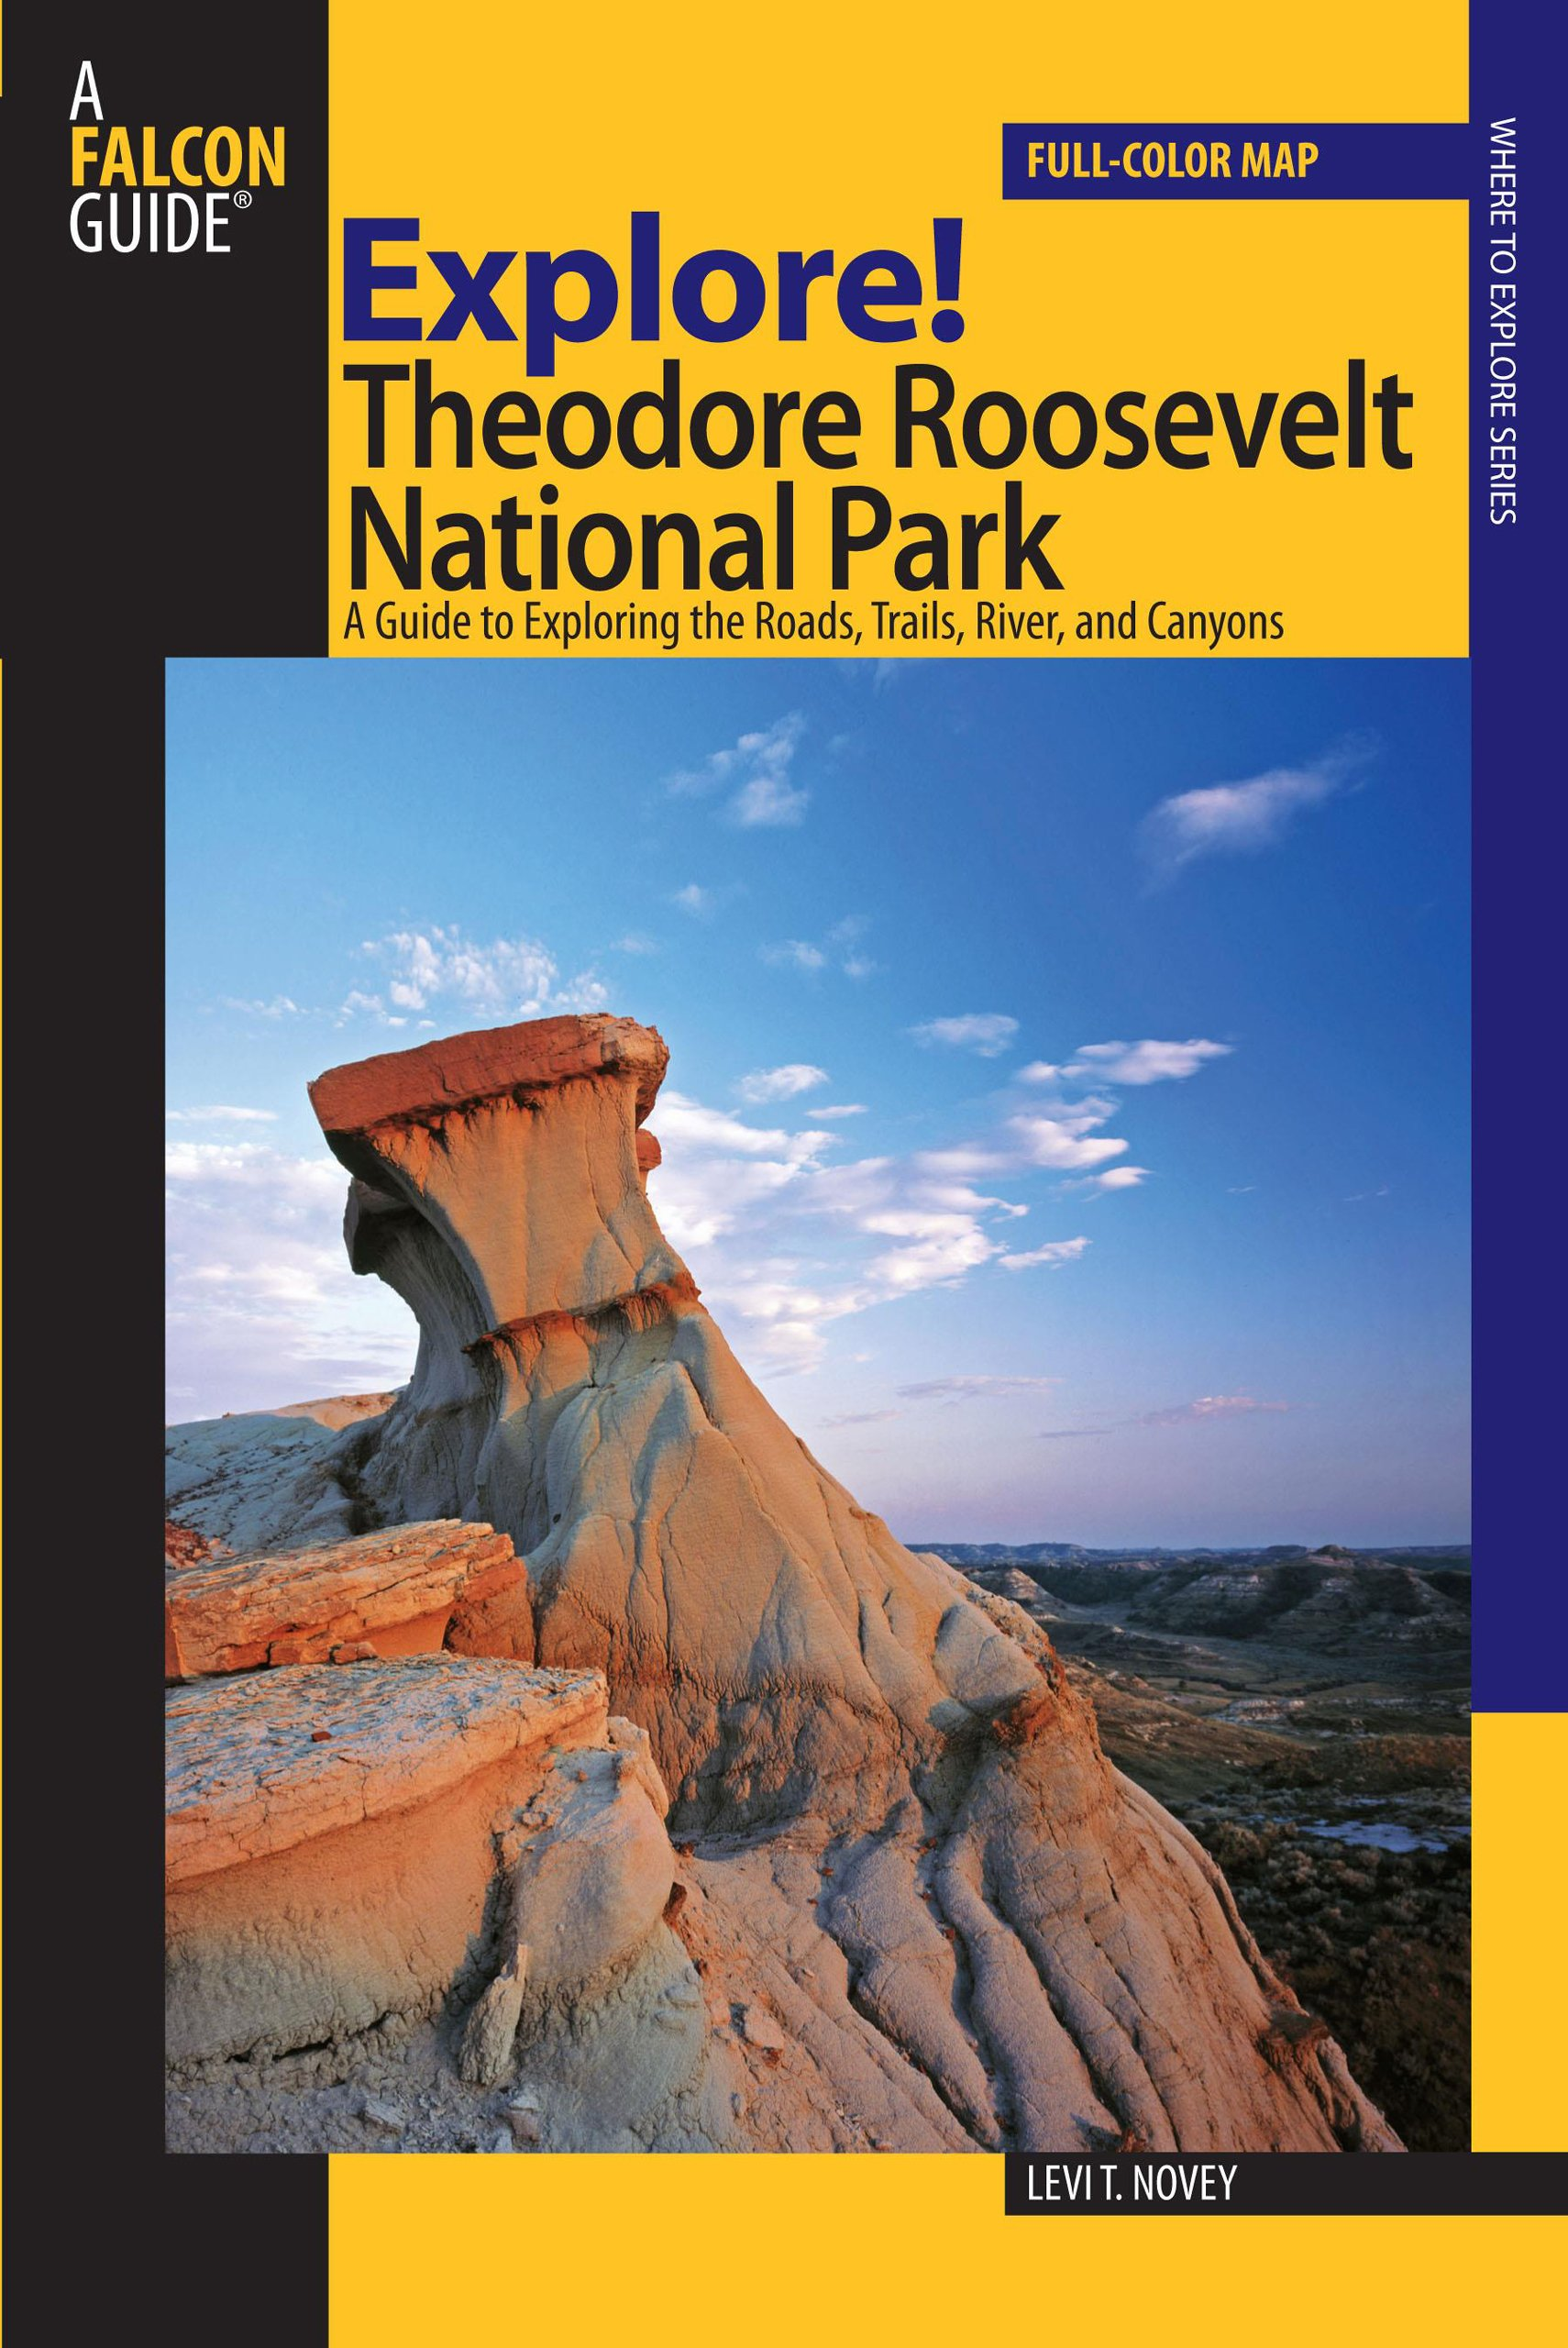 Read Online Explore! Theodore Roosevelt National Park: A Guide To Exploring The Roads, Trails, River, And Canyons (Exploring Series) PDF